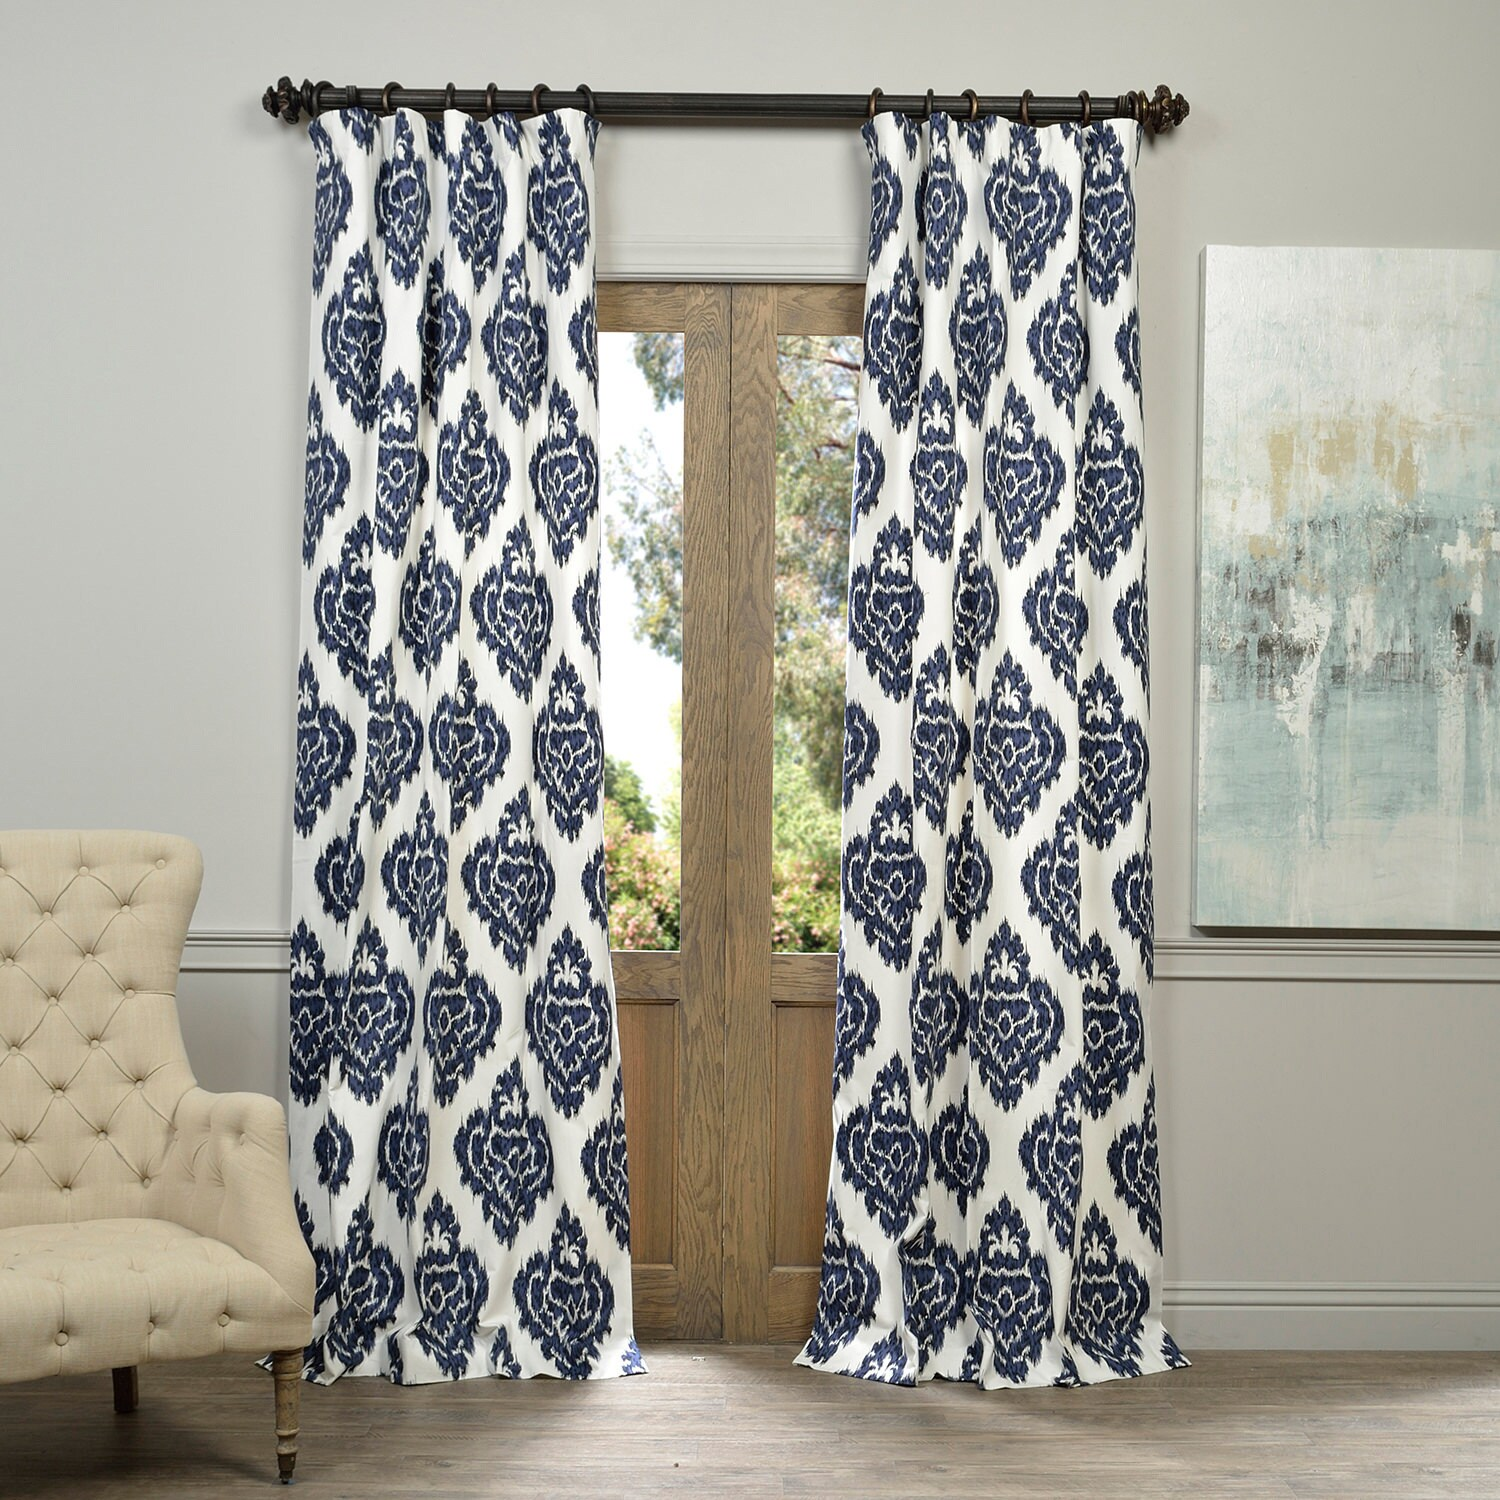 120 Inches Curtains & Drapes For Less